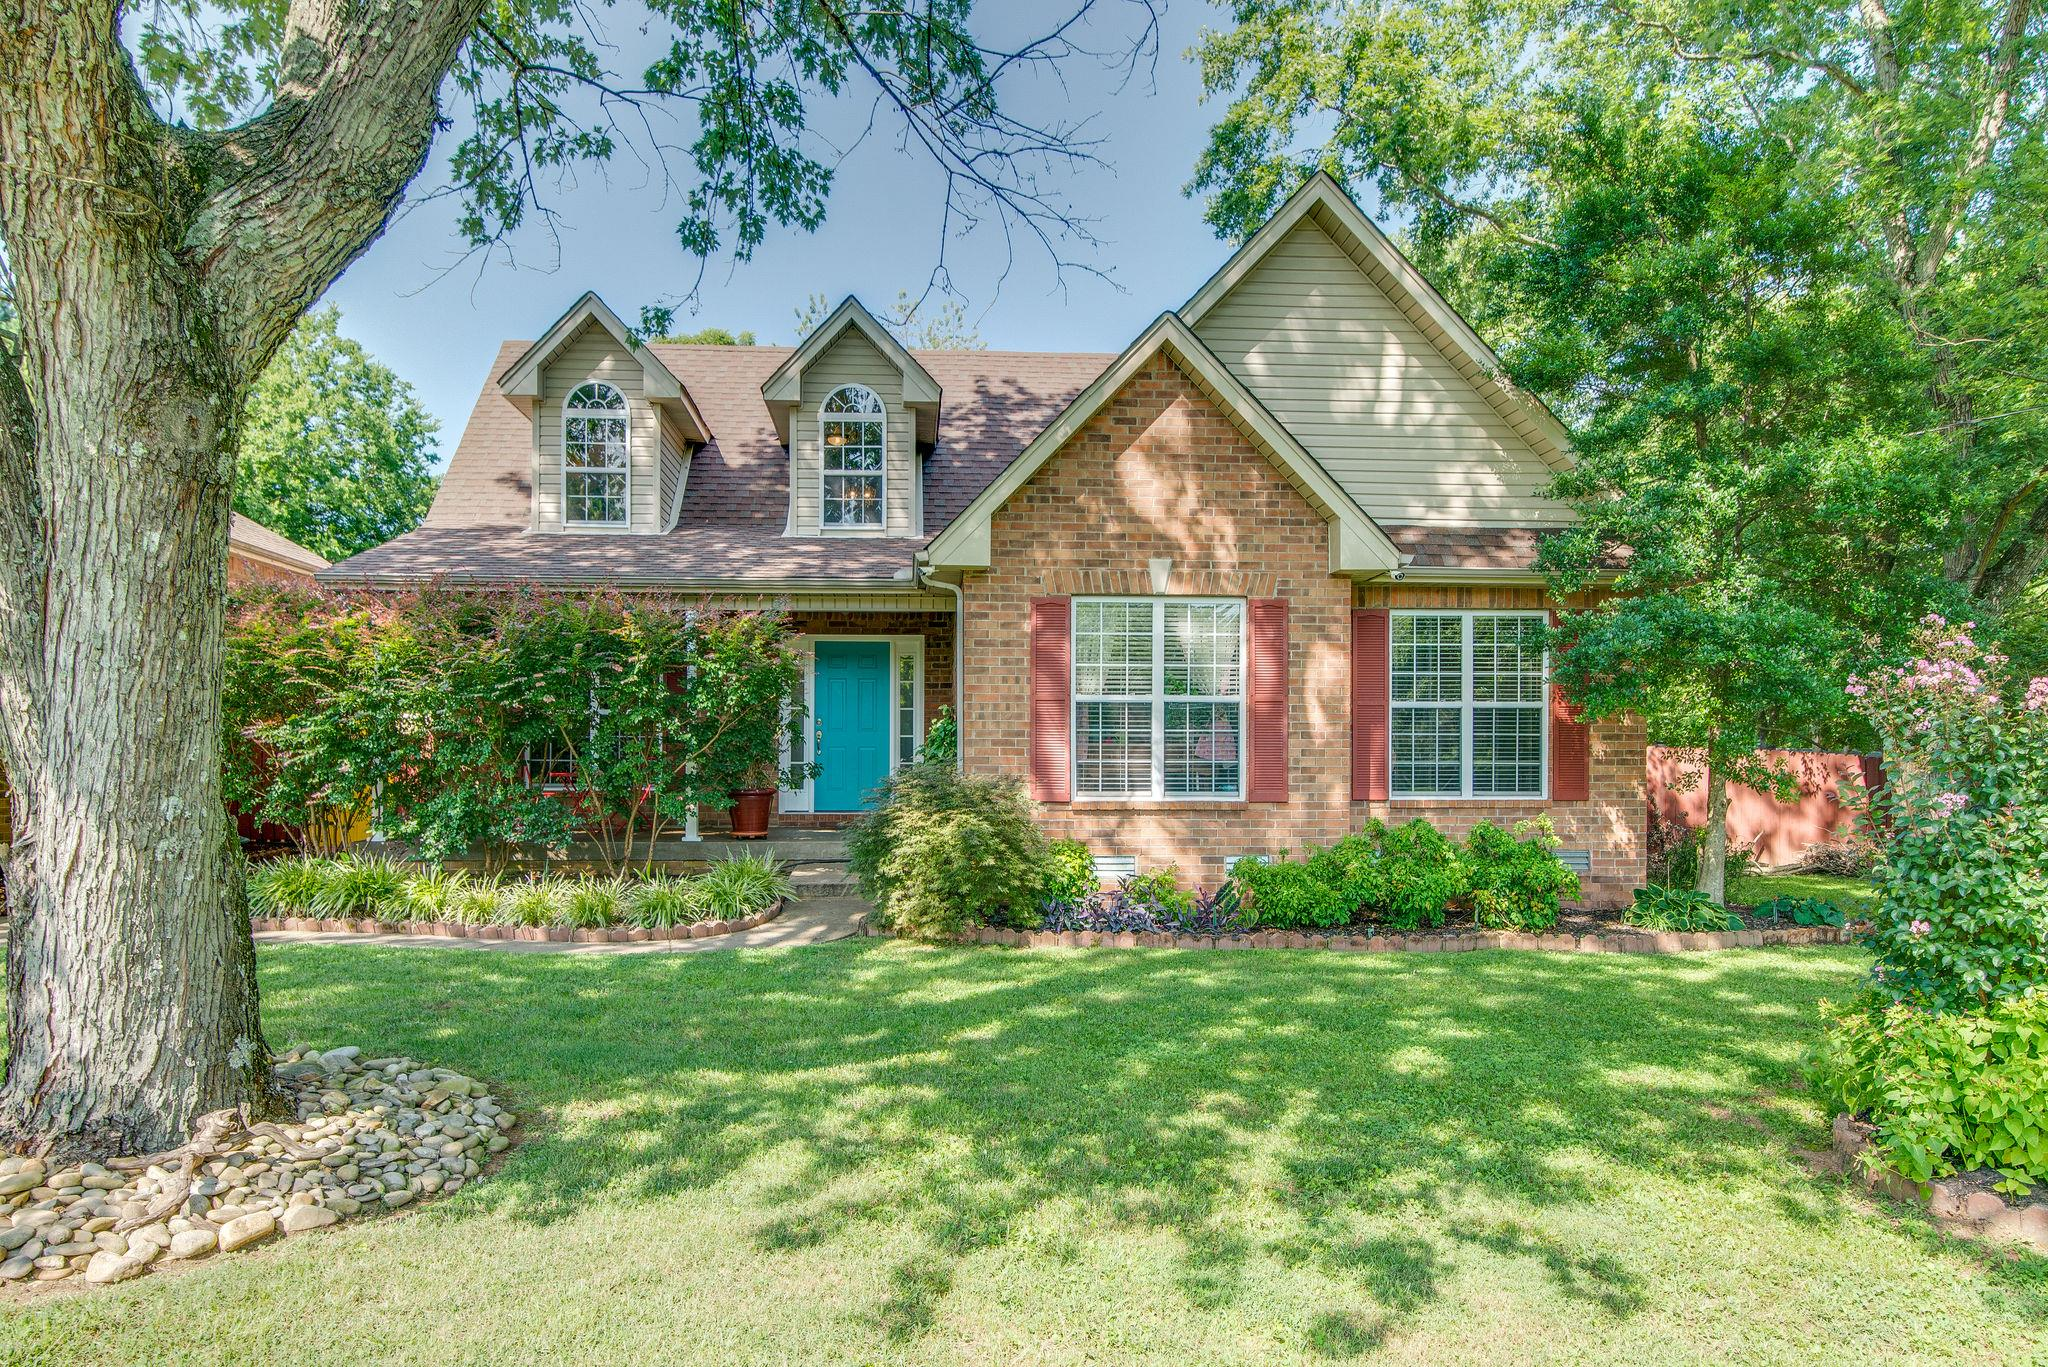 4581 Woodside Cir, Old Hickory, TN 37138 - Old Hickory, TN real estate listing